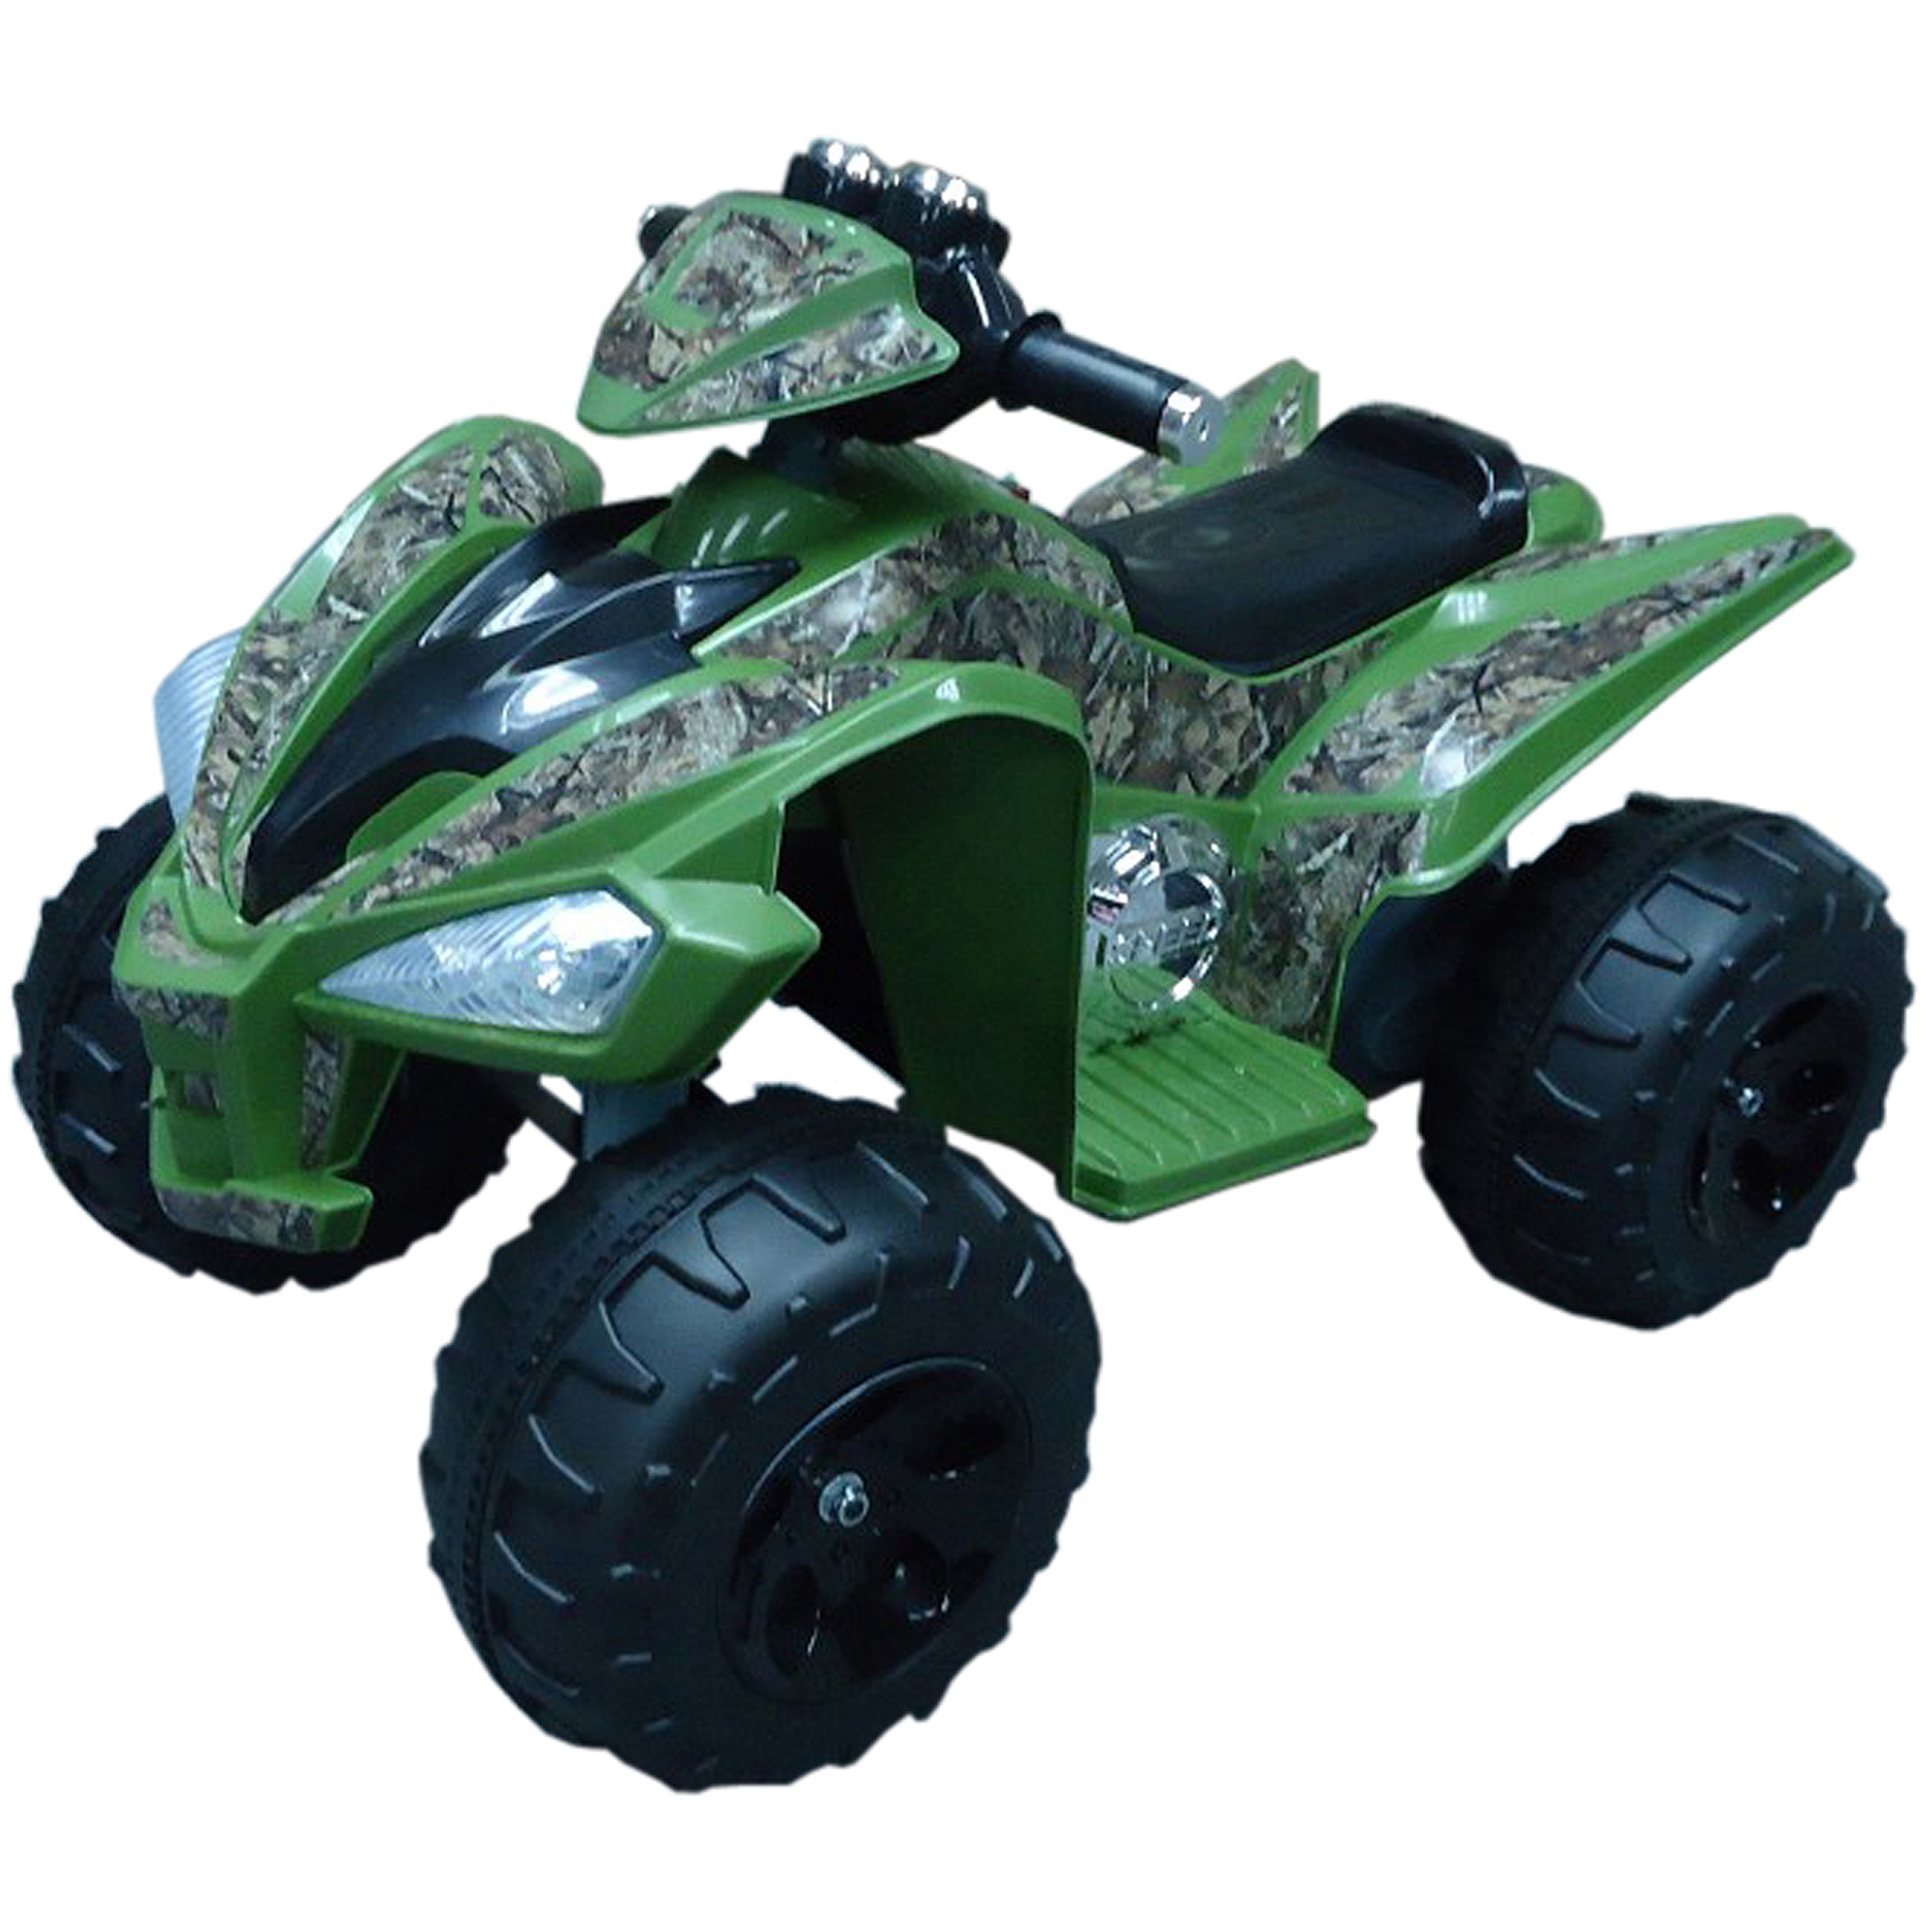 True Timber 12-Volt Battery-Operated Camo Super Quad Ride-On, Green